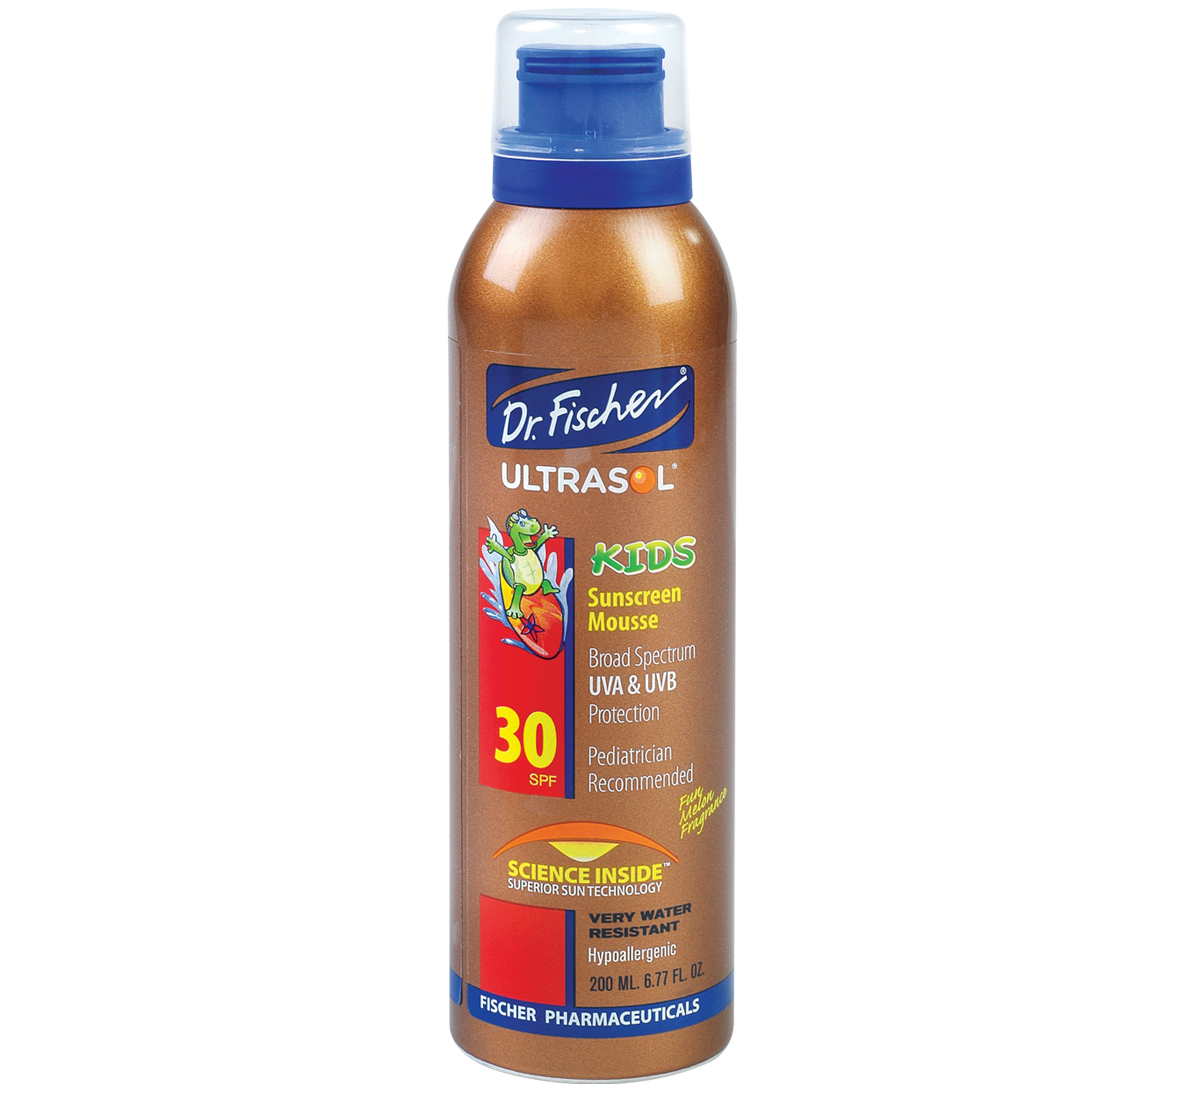 E_ultrasol_kids_mousse_SPF30_1184x1104